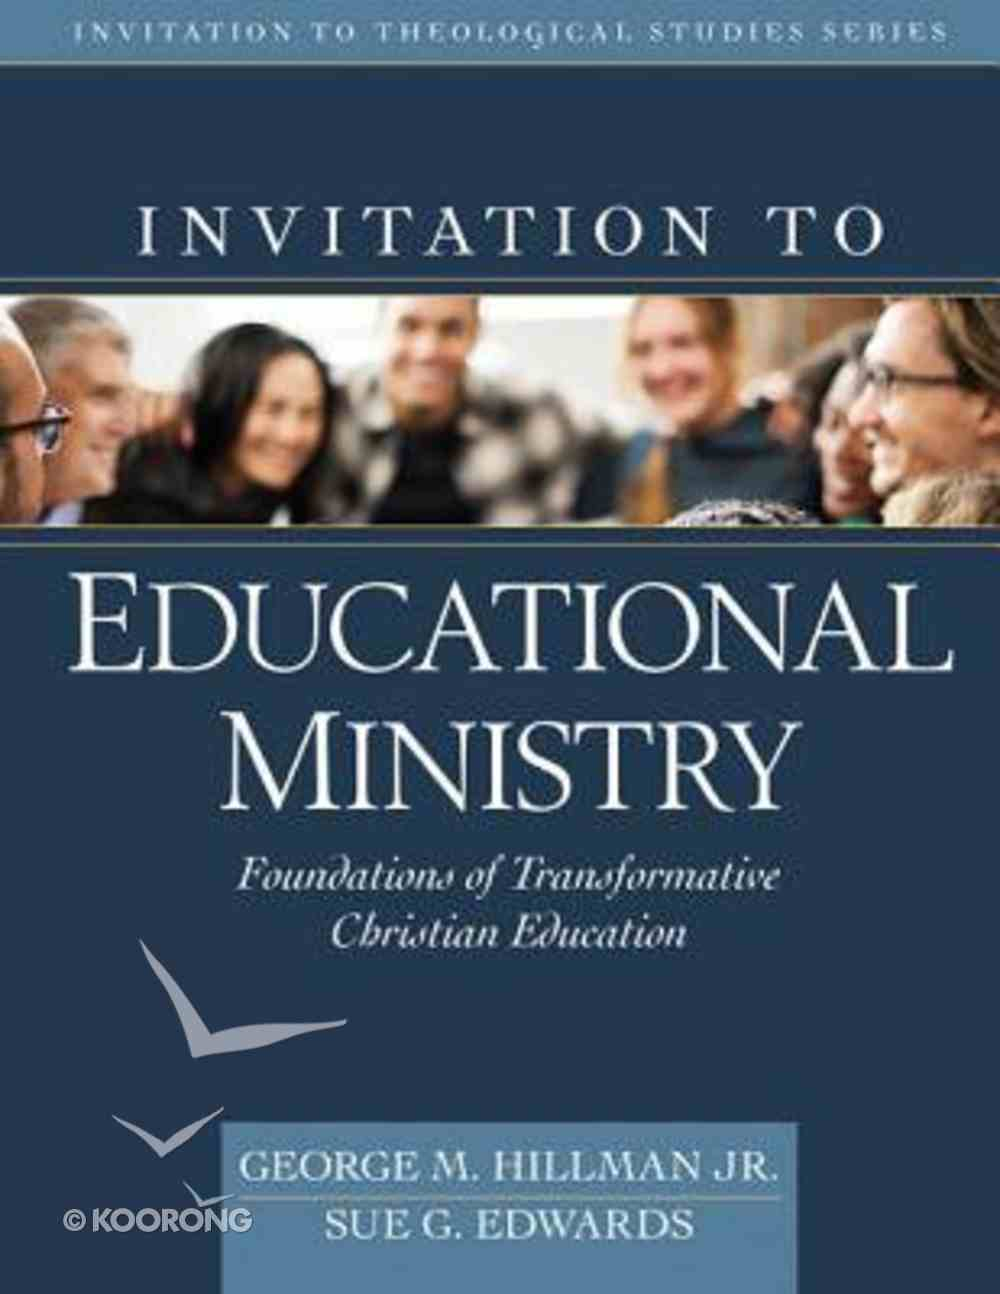 Invitation to Educational Ministry - Foundations of Transformative Christian Education (Invitation To Theological Studies Series) Hardback